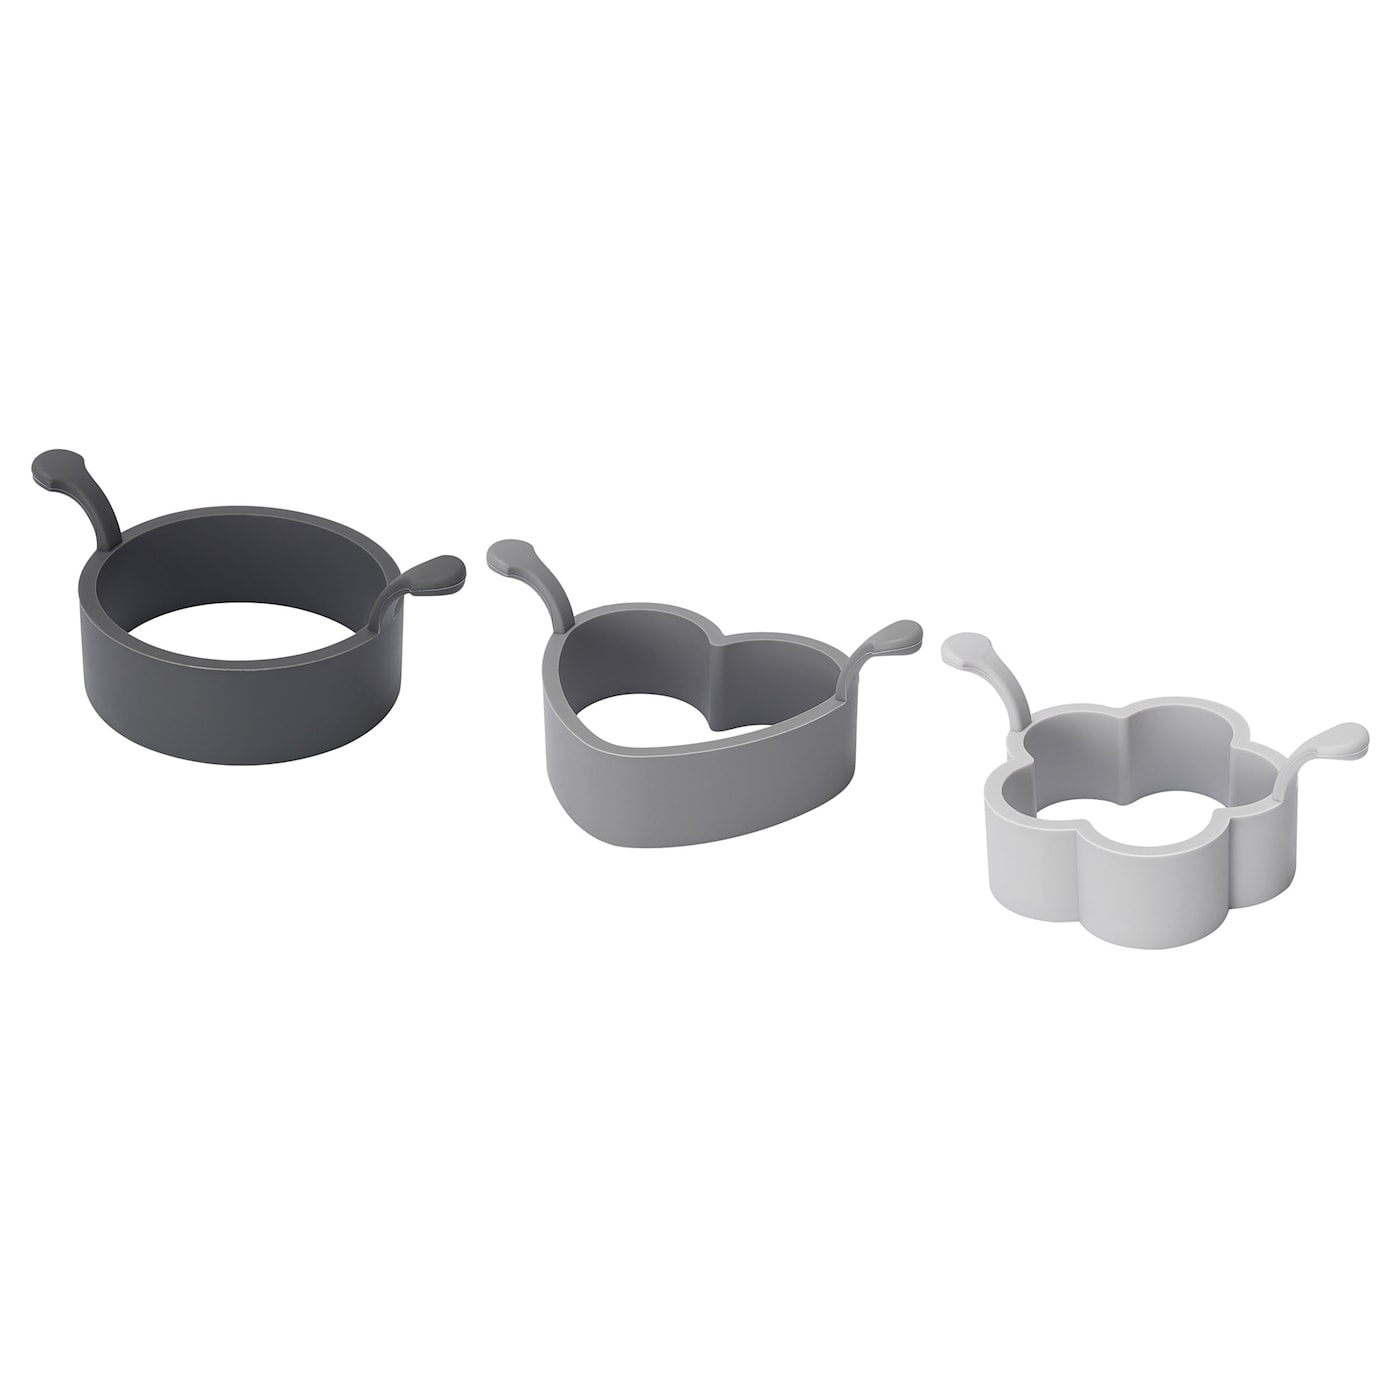 IKEA FISKBEN 3-piece cooking mould set Easy to lift since the moulds have 2 small handles.